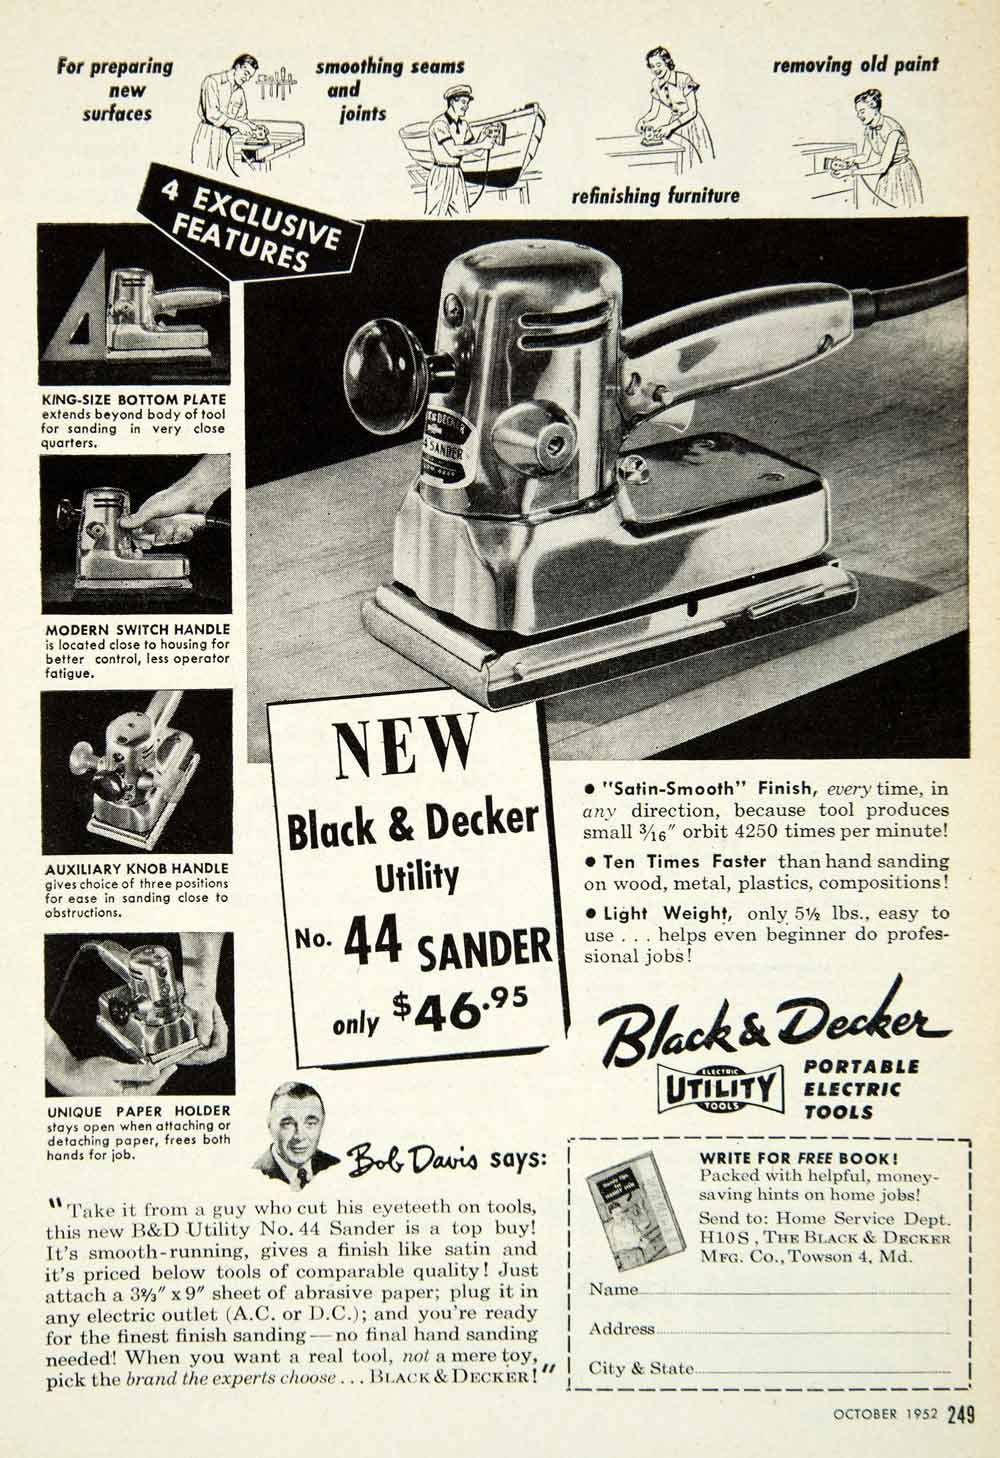 blackdecker corporation essay The following essay was written by paul tukey, founder of  dc, and the for- profit black & decker company of maryland challenges.